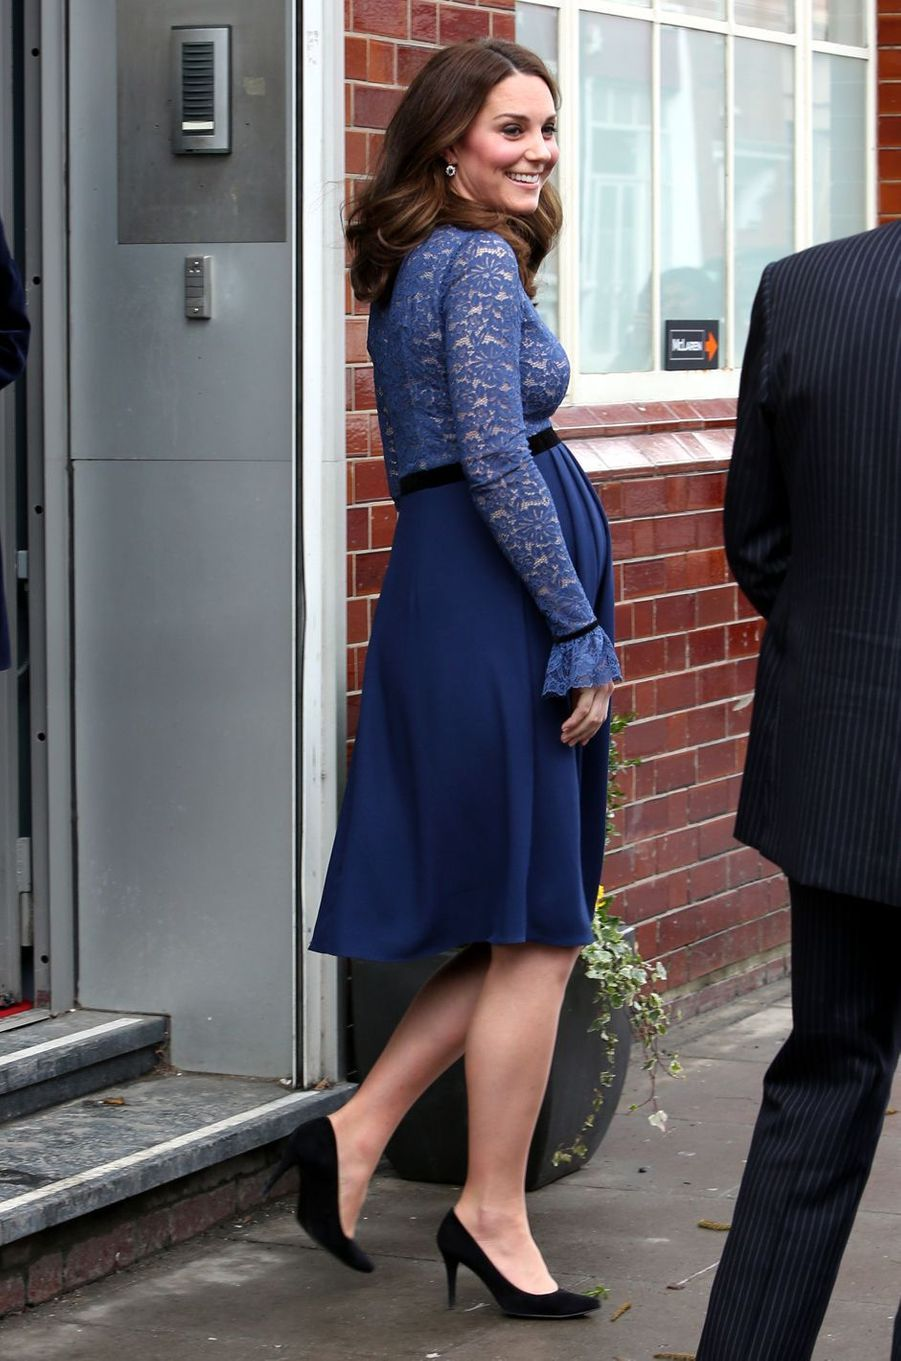 La duchesse Catherine de Cambridge à Londres, le 7 mars 2018